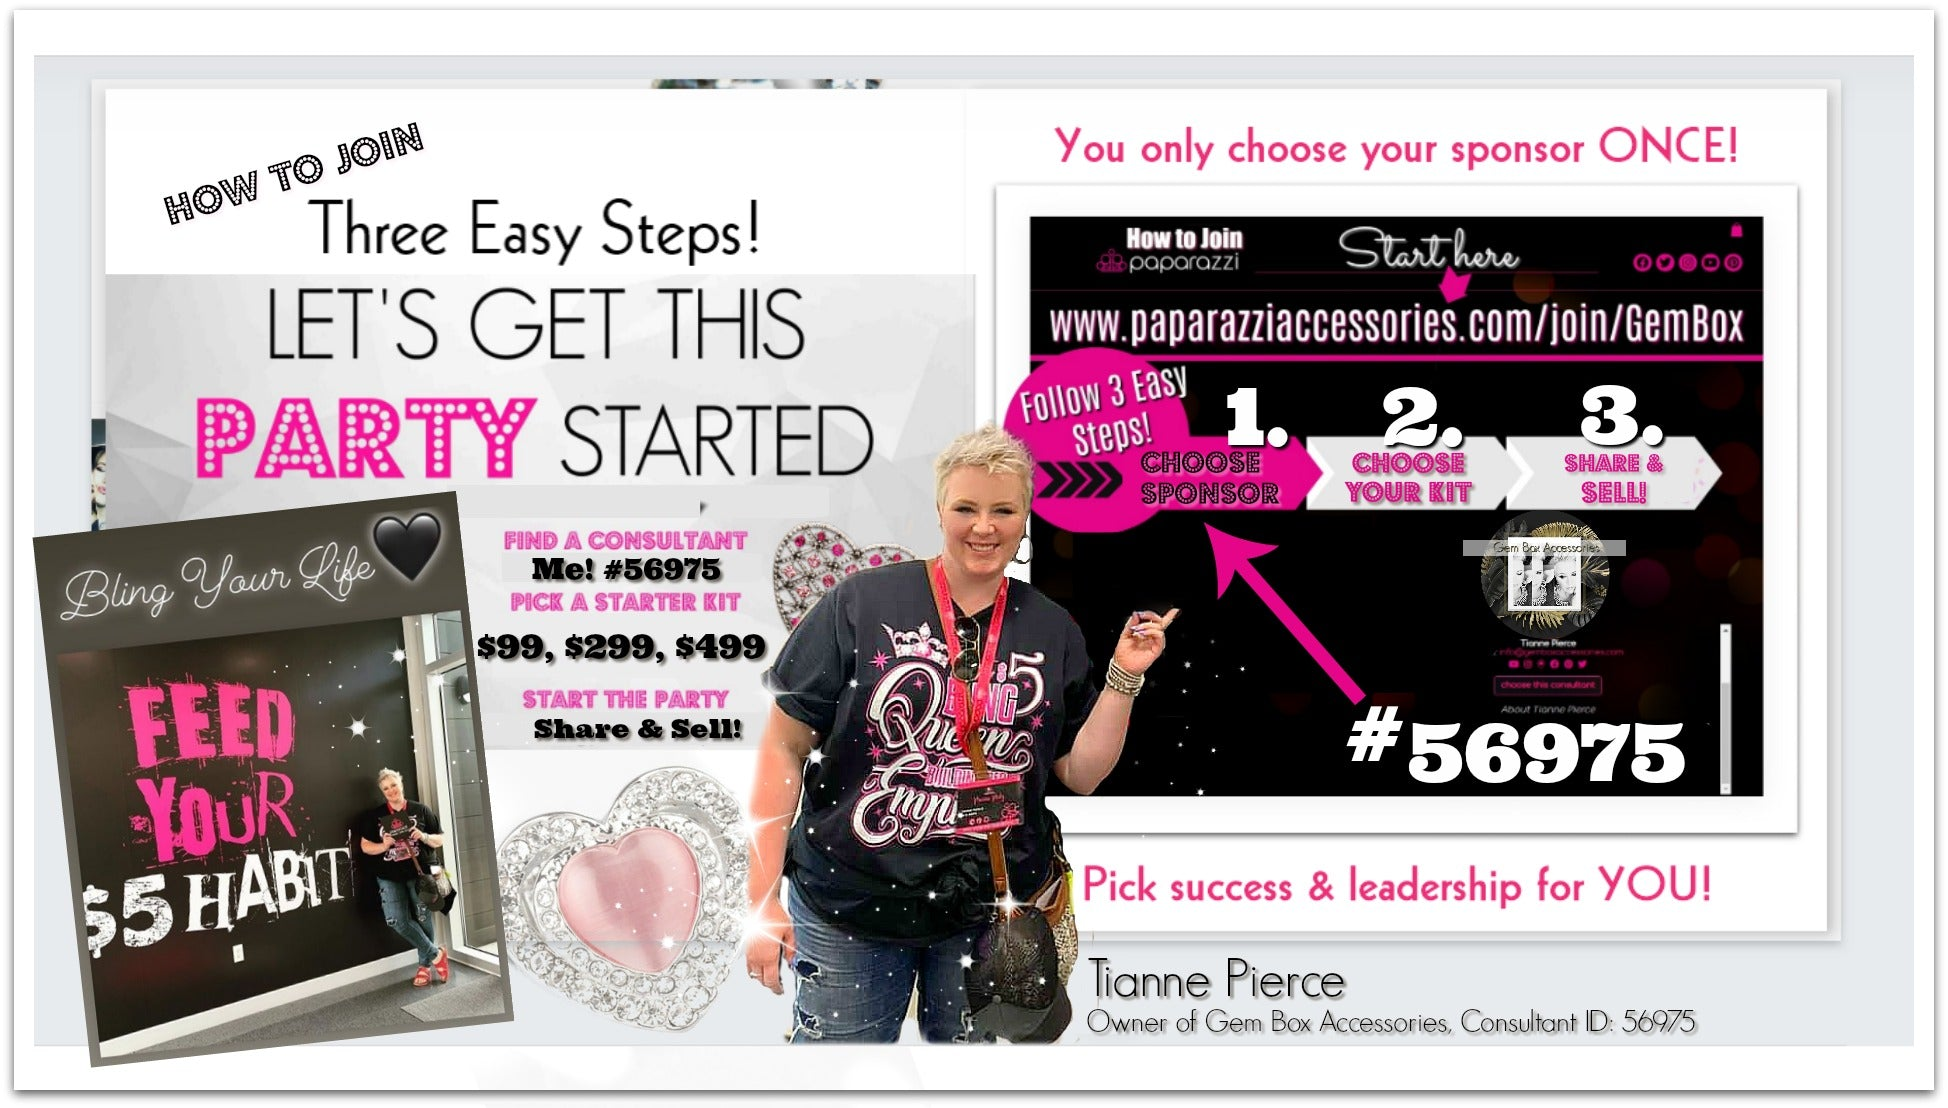 Paparazzi Jewelry | Top Ten Reasons To Join Paparazzi | Gem Box Accessories